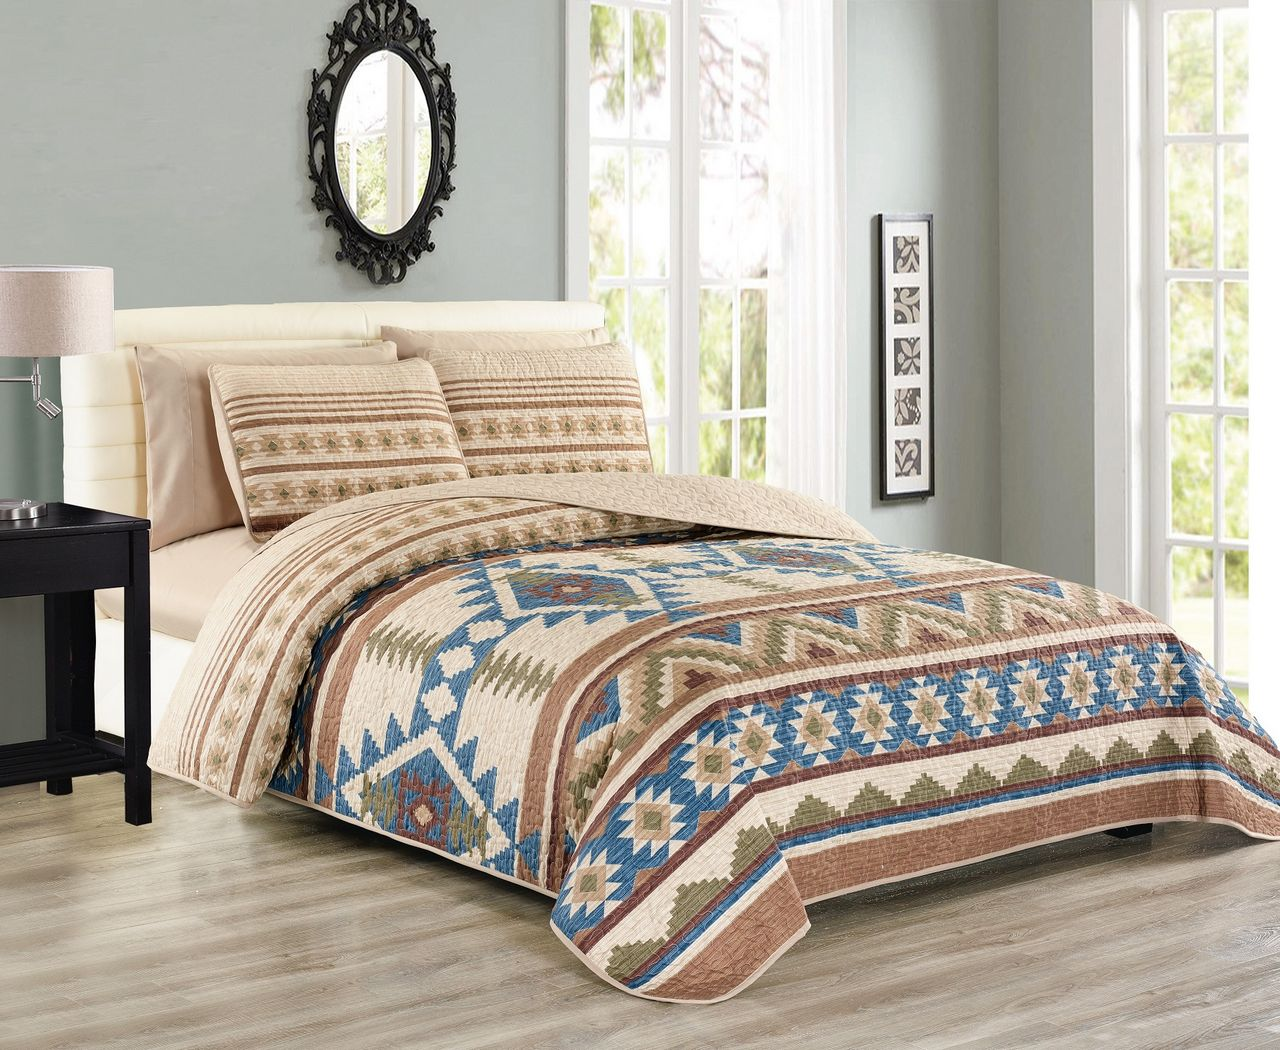 6 Piece Southwest Reversible Bedspread Quilt With Sheet